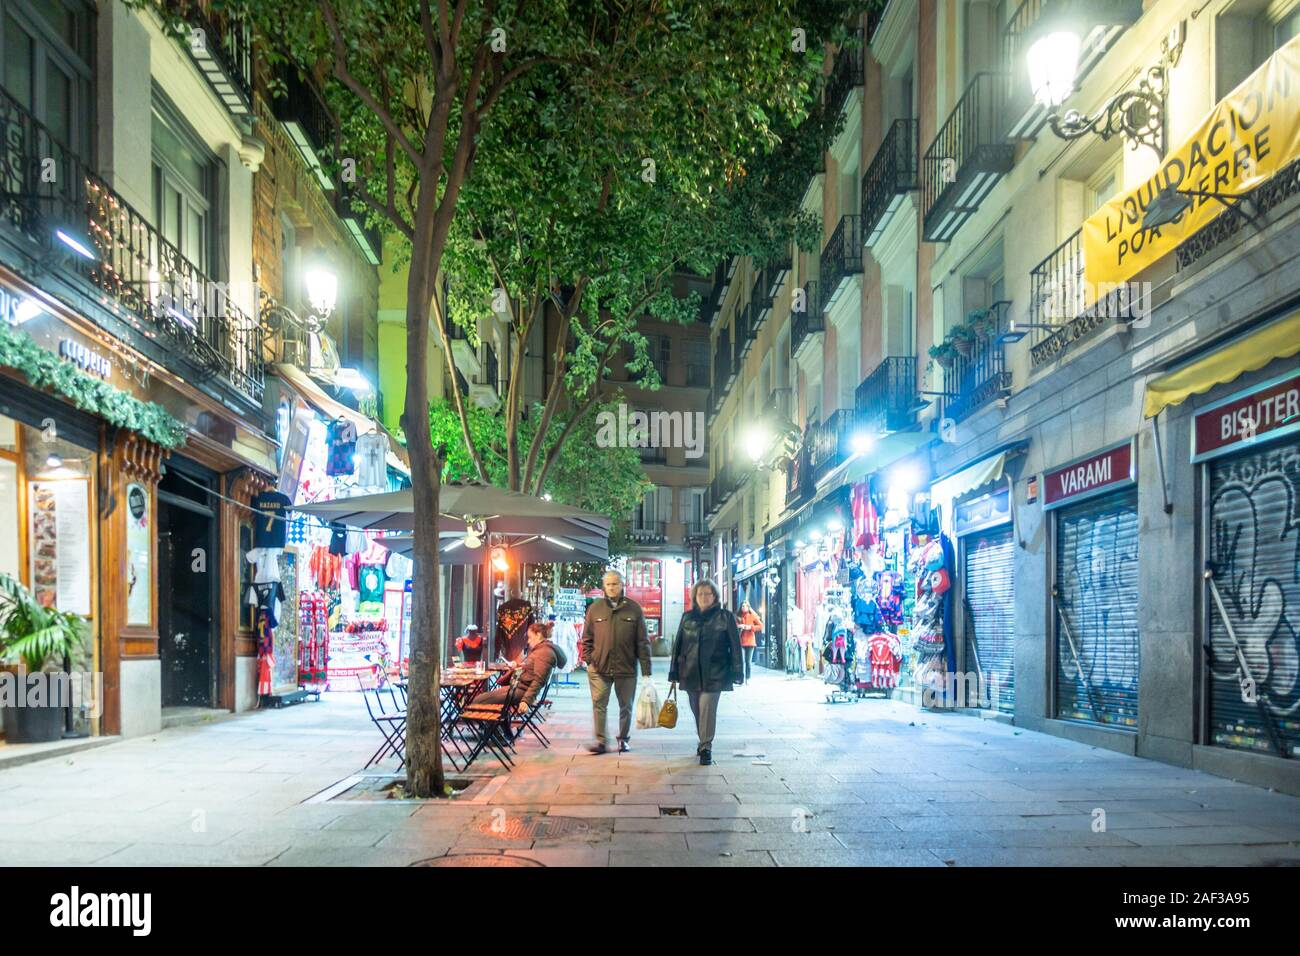 a-view-down-a-city-centre-street-called-calle-de-postas-in-madrid-spain-at-night-trees-run-down-the-middle-of-the-street-which-is-lit-up-by-lights-2AF3A95.jpg